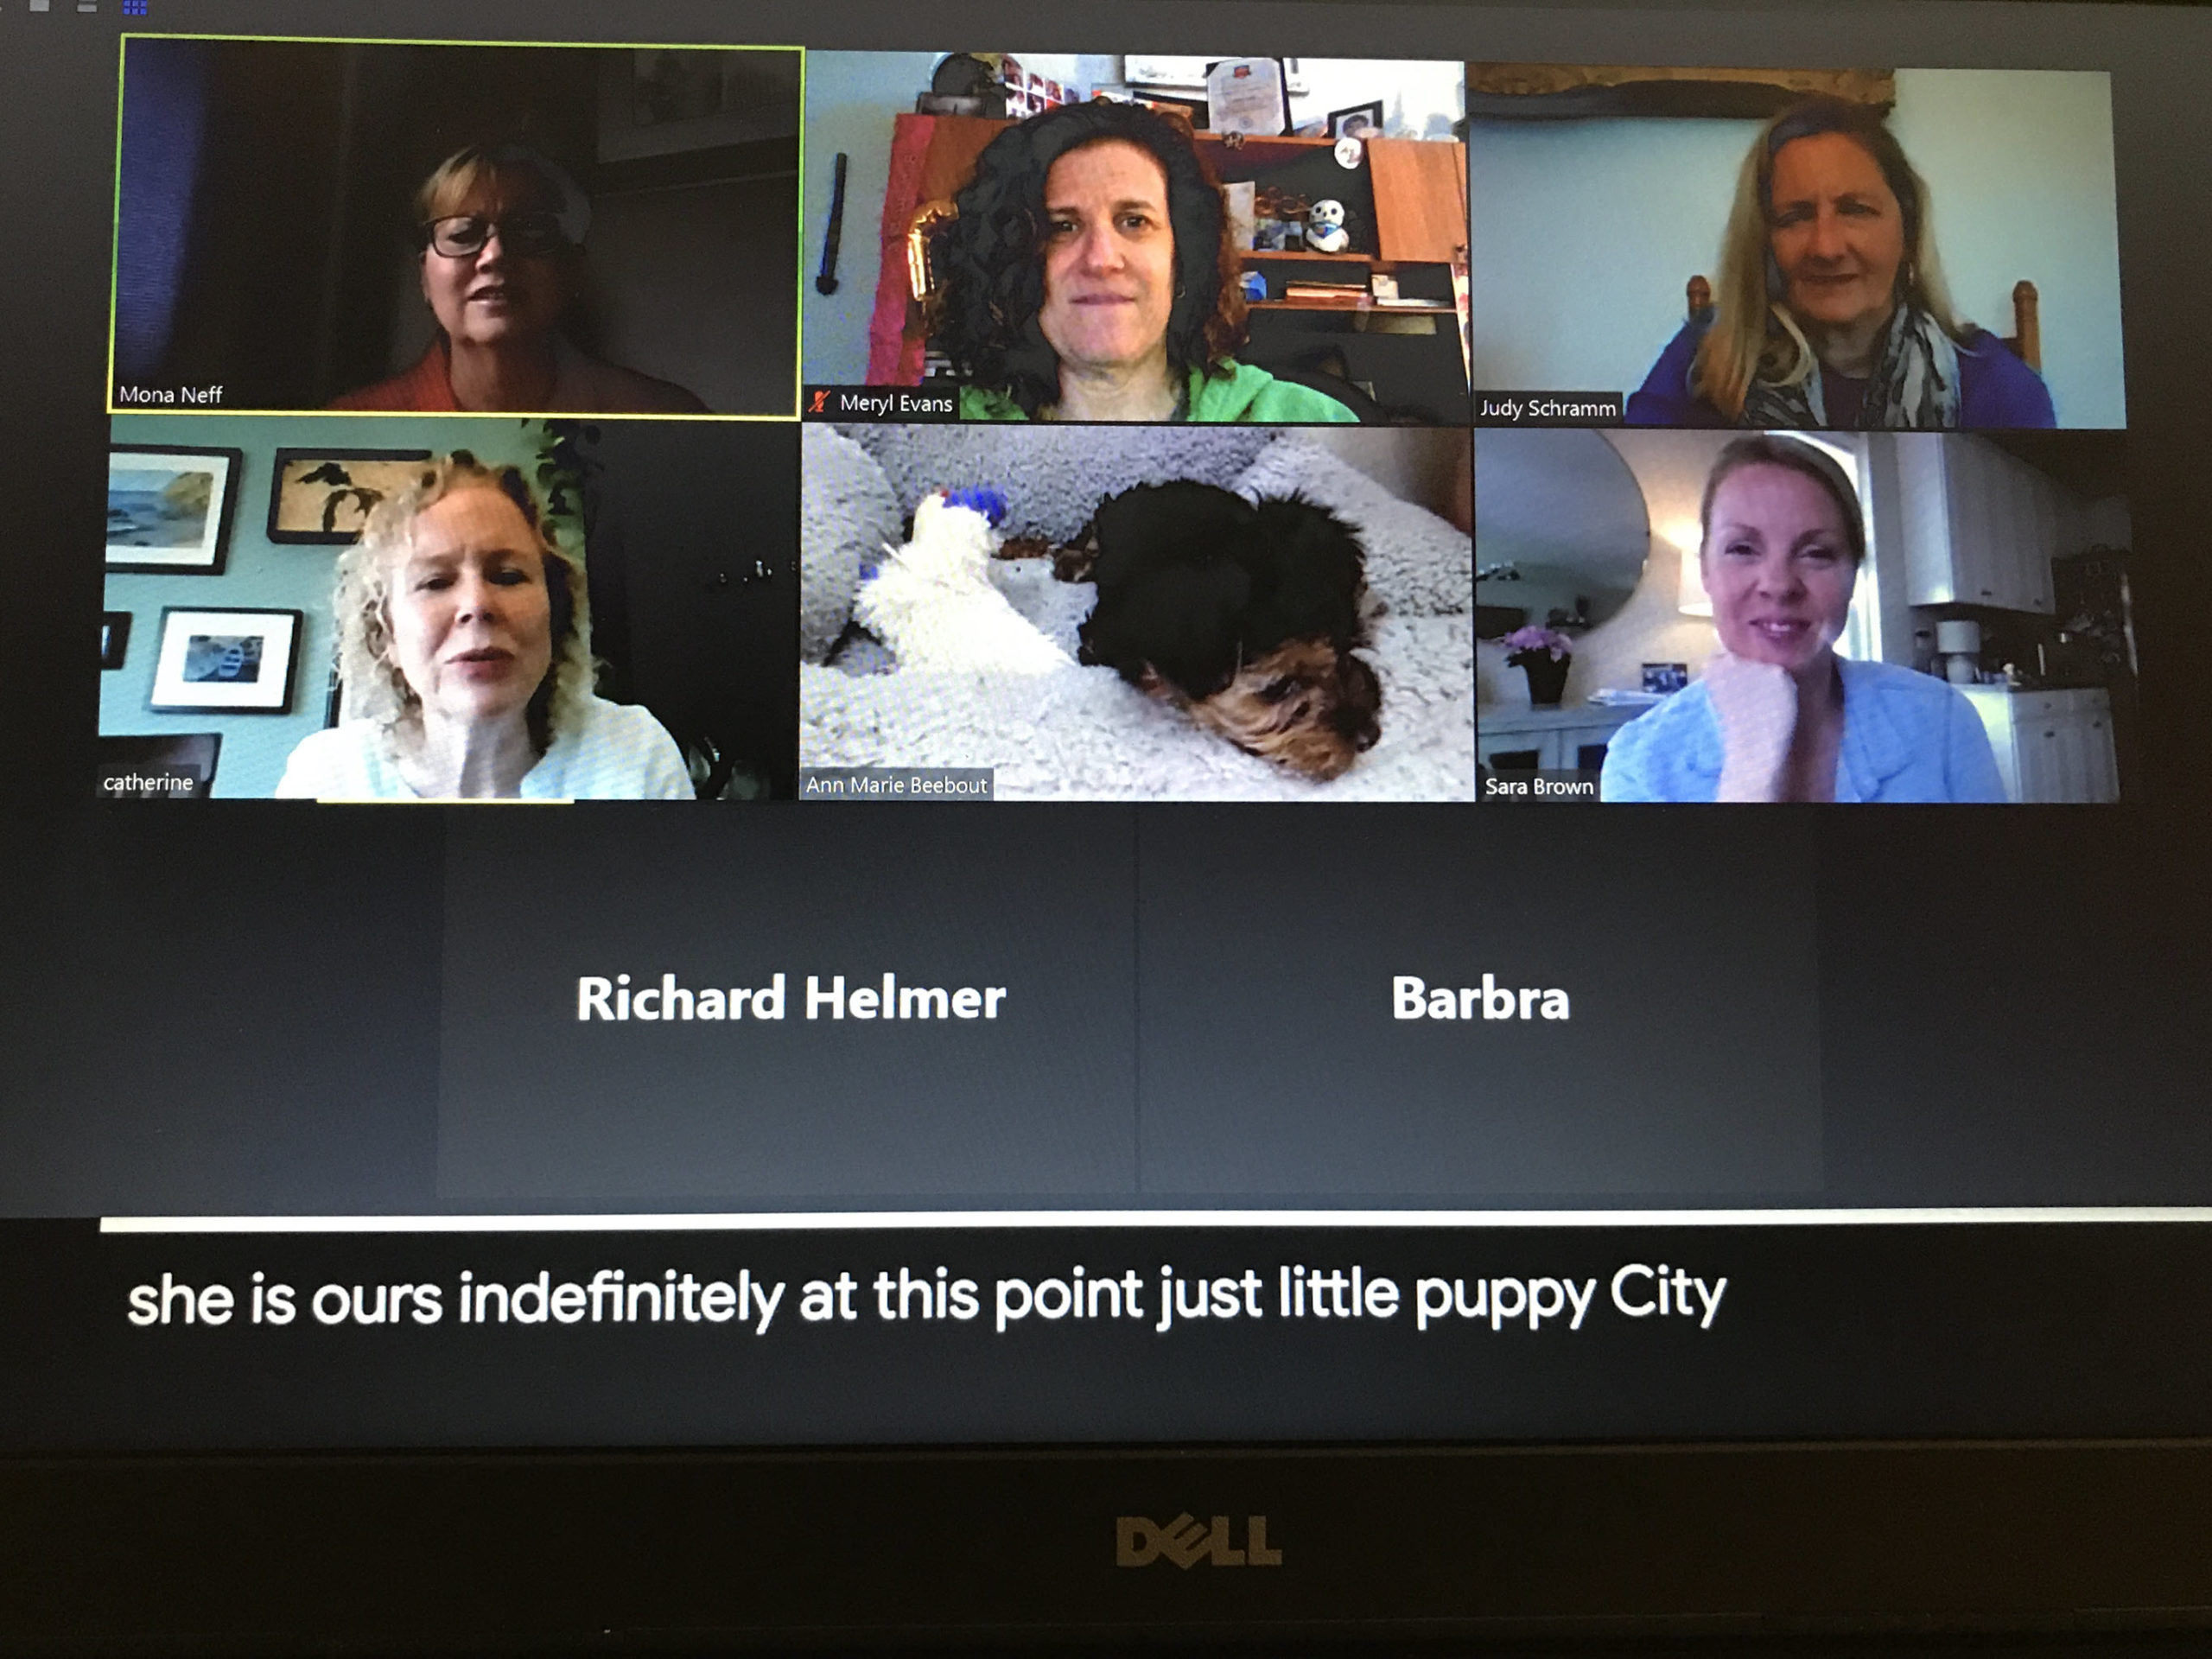 Video call with automatic captioning by Google Slides